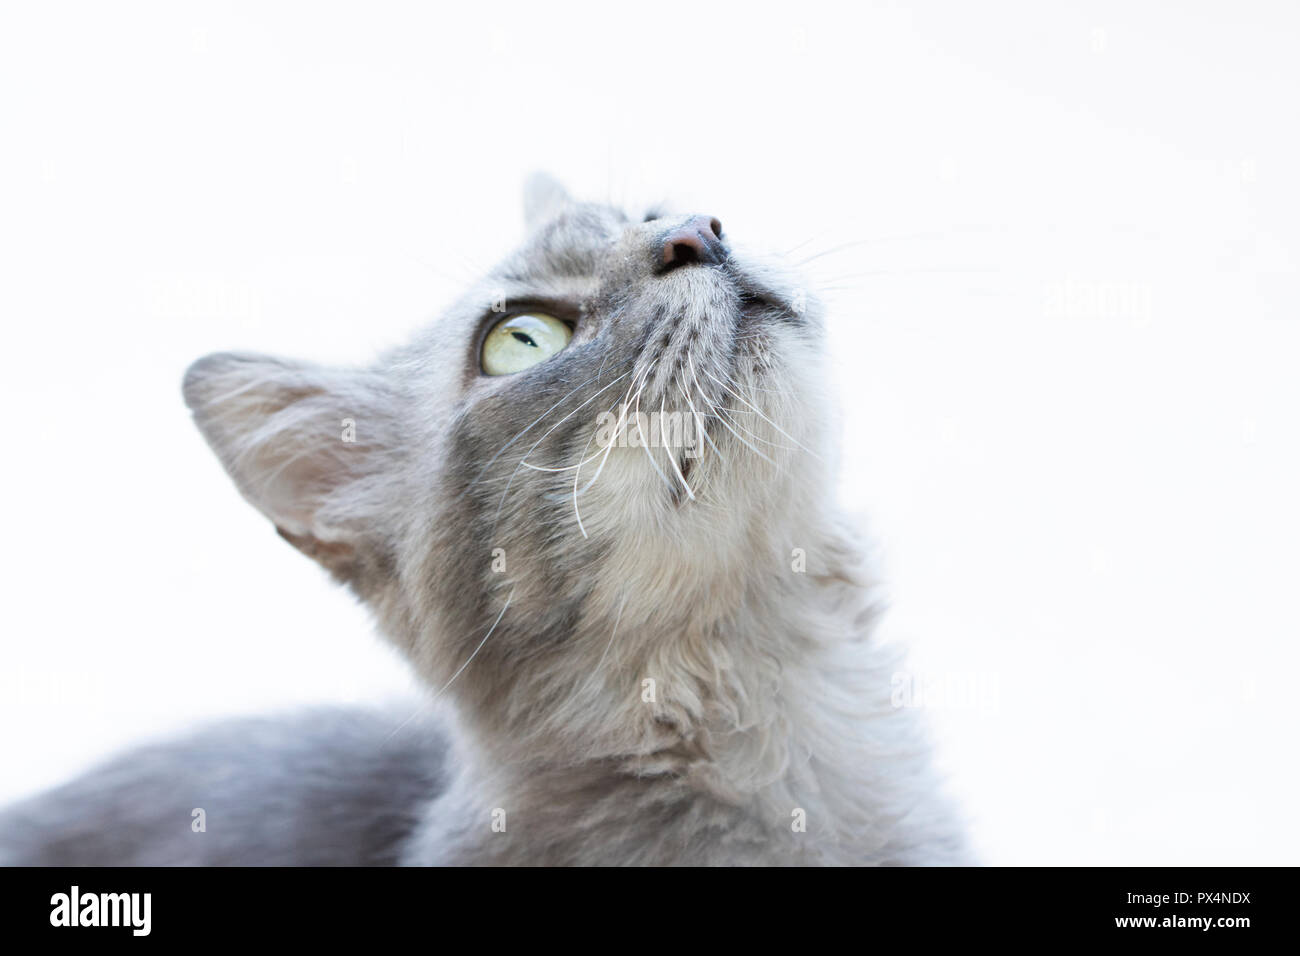 Closeup to gray cat with green eyes - Stock Image